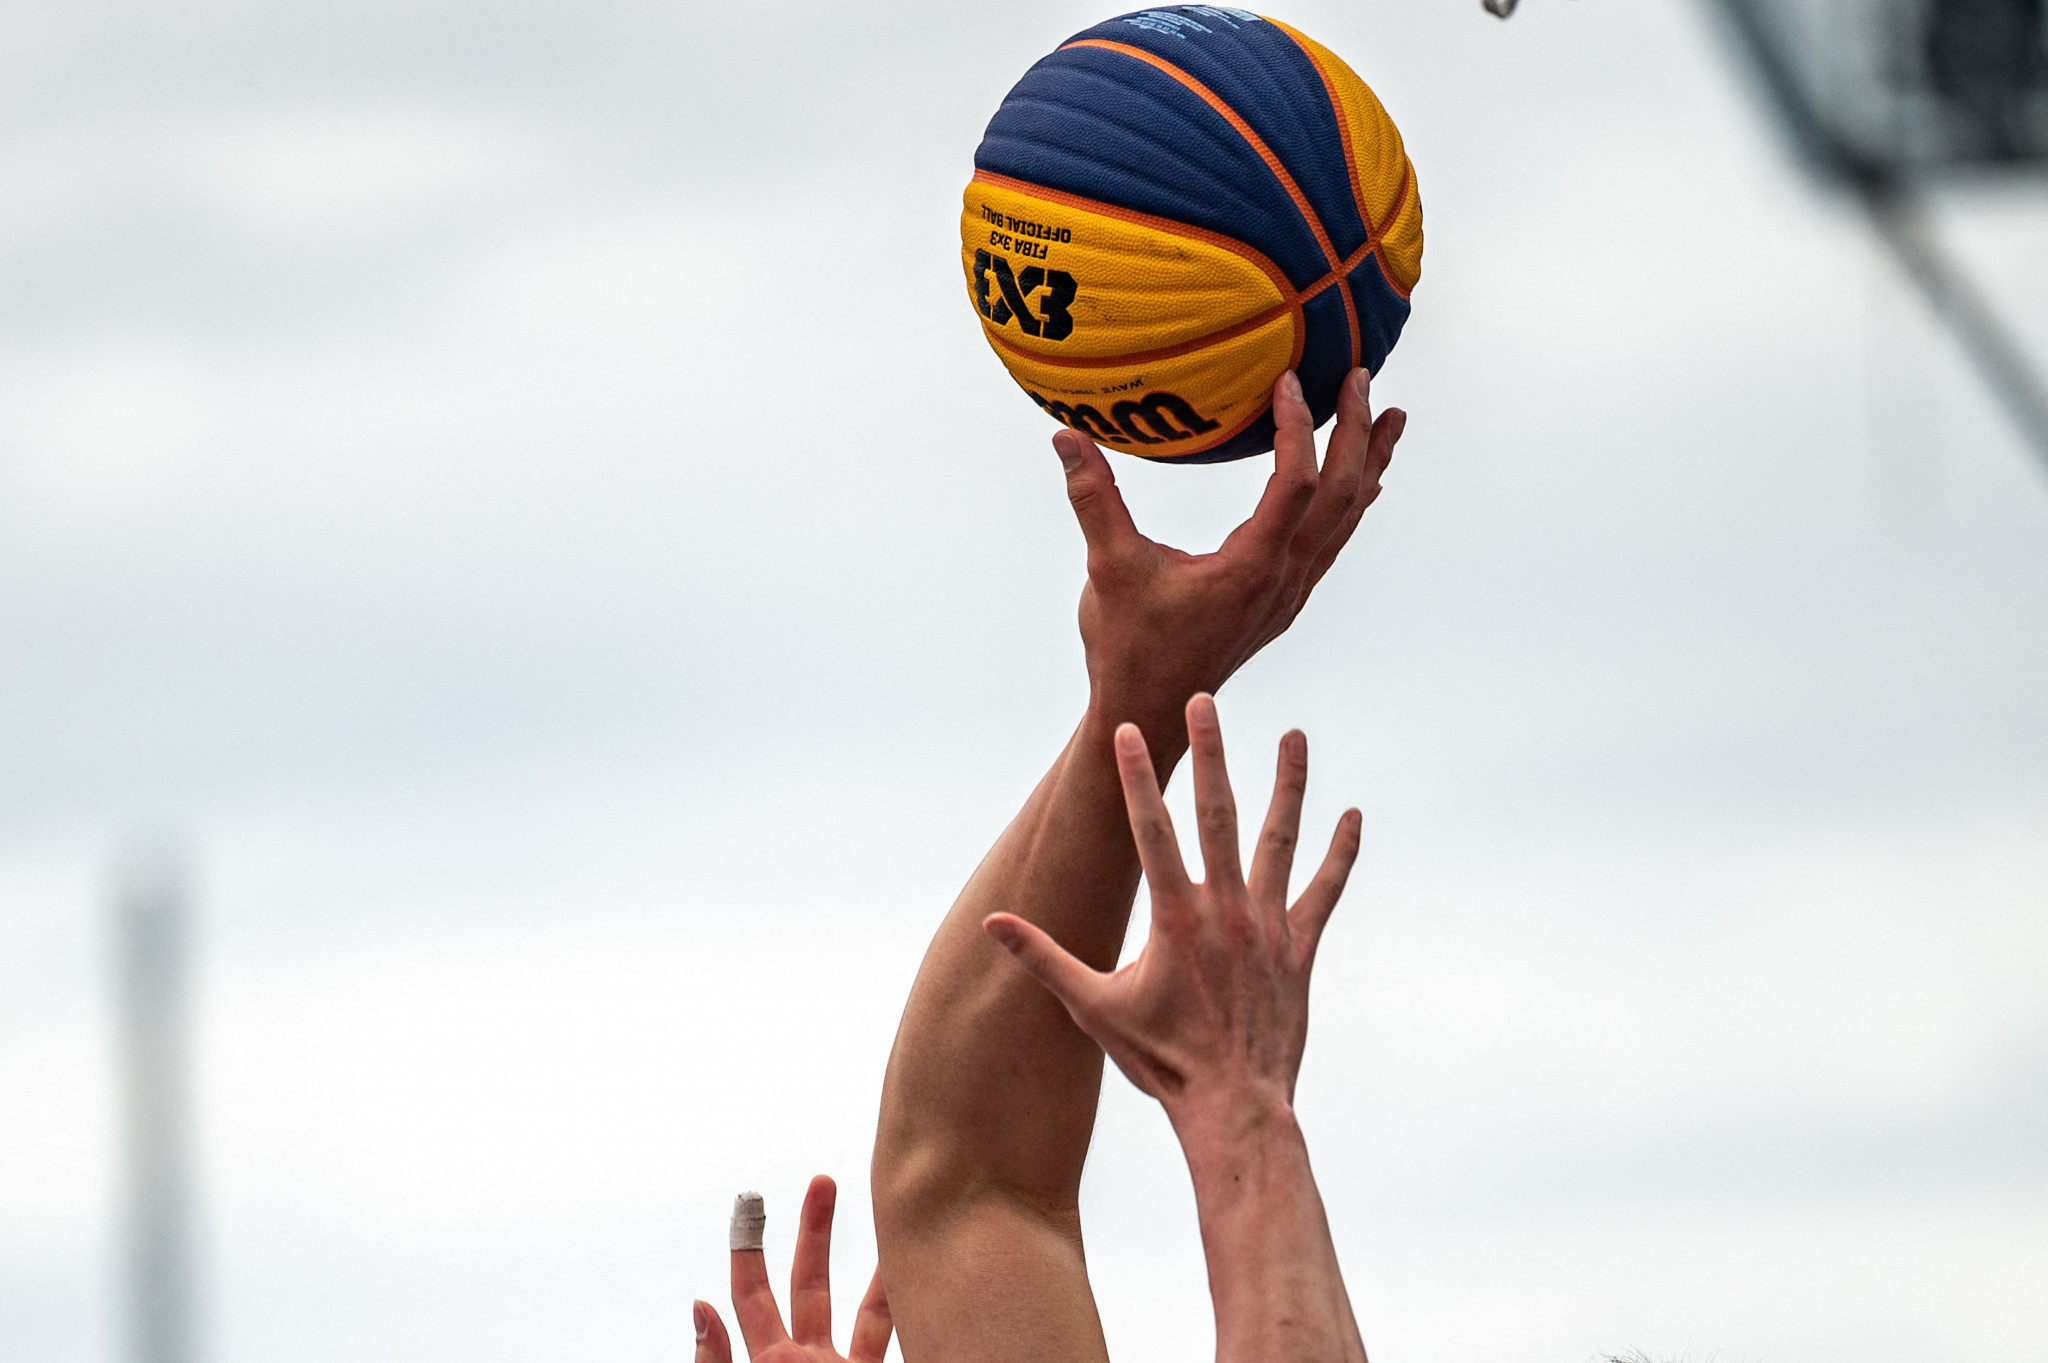 United States men's and women's teams win opening two games as 3x3 basketball Olympic qualifier continues